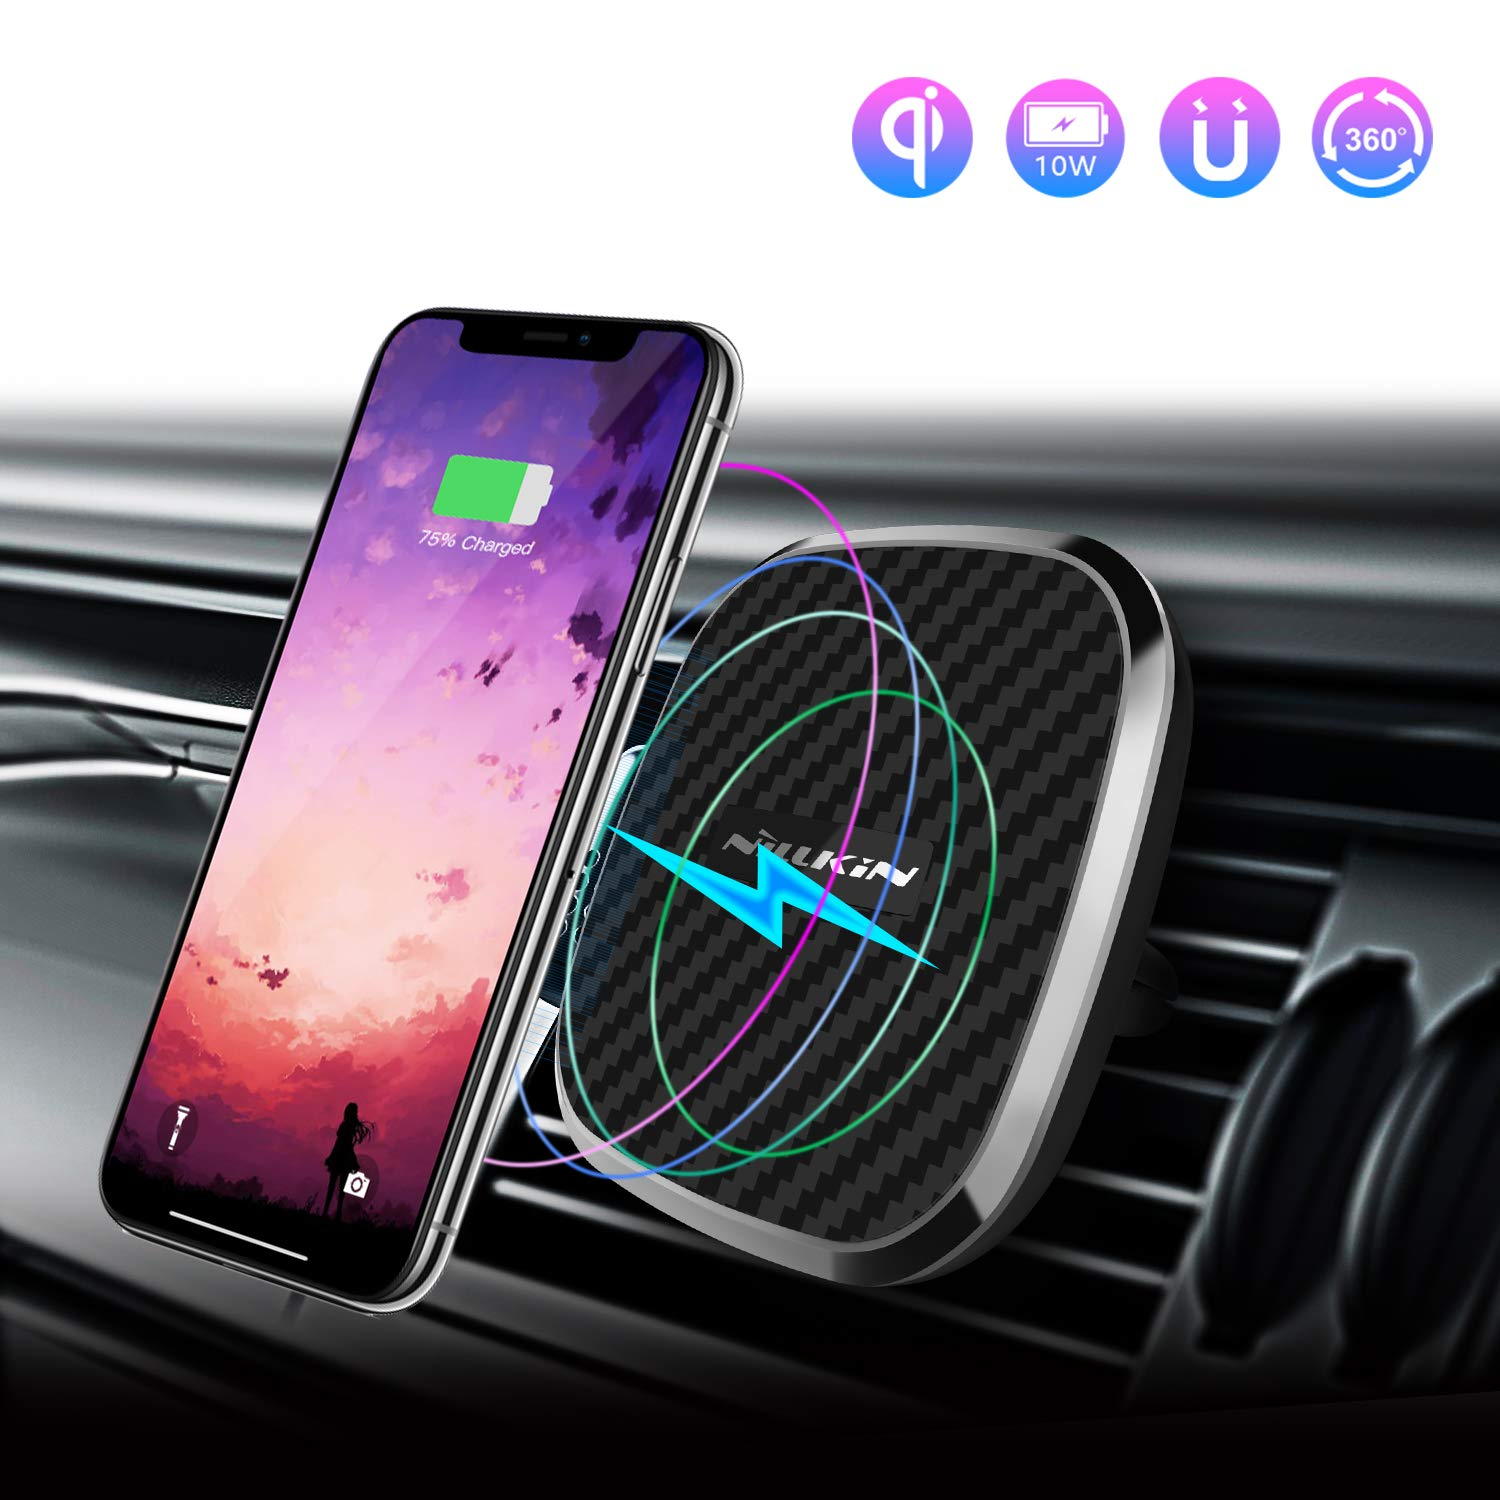 Nillkin Wireless Car Charger, 10W Fast Charge Qi Magnetic Car Air Vent Mount Compatible with Samsung Note 9/8/S9/S8 Plus, Fast Charging 7.5W for iPhone Xs MAX/XS/XR/X/8 Plus-Model B by Nillkin